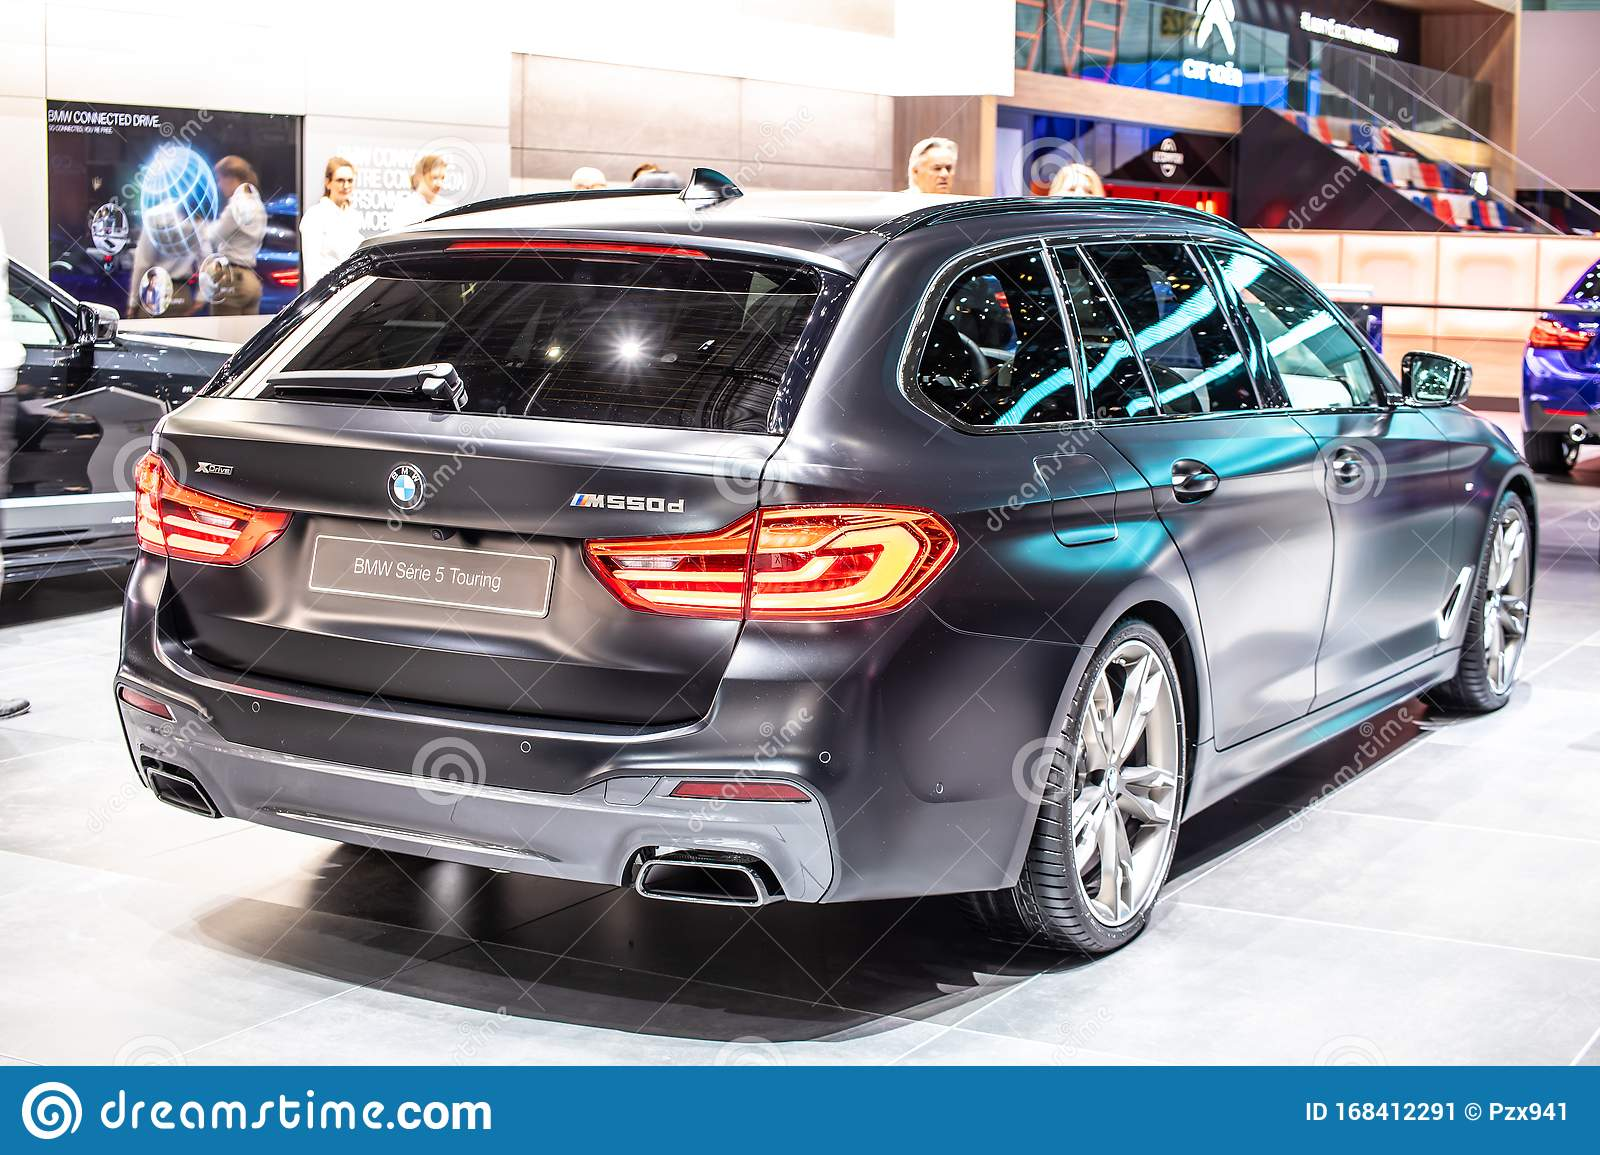 Black Bmw 5 Series Touring M550d Geneva International Motor Show 5er Station Wagon Manufactured And Marketed By Bmw Editorial Photo Image Of Generation Auto 168412291